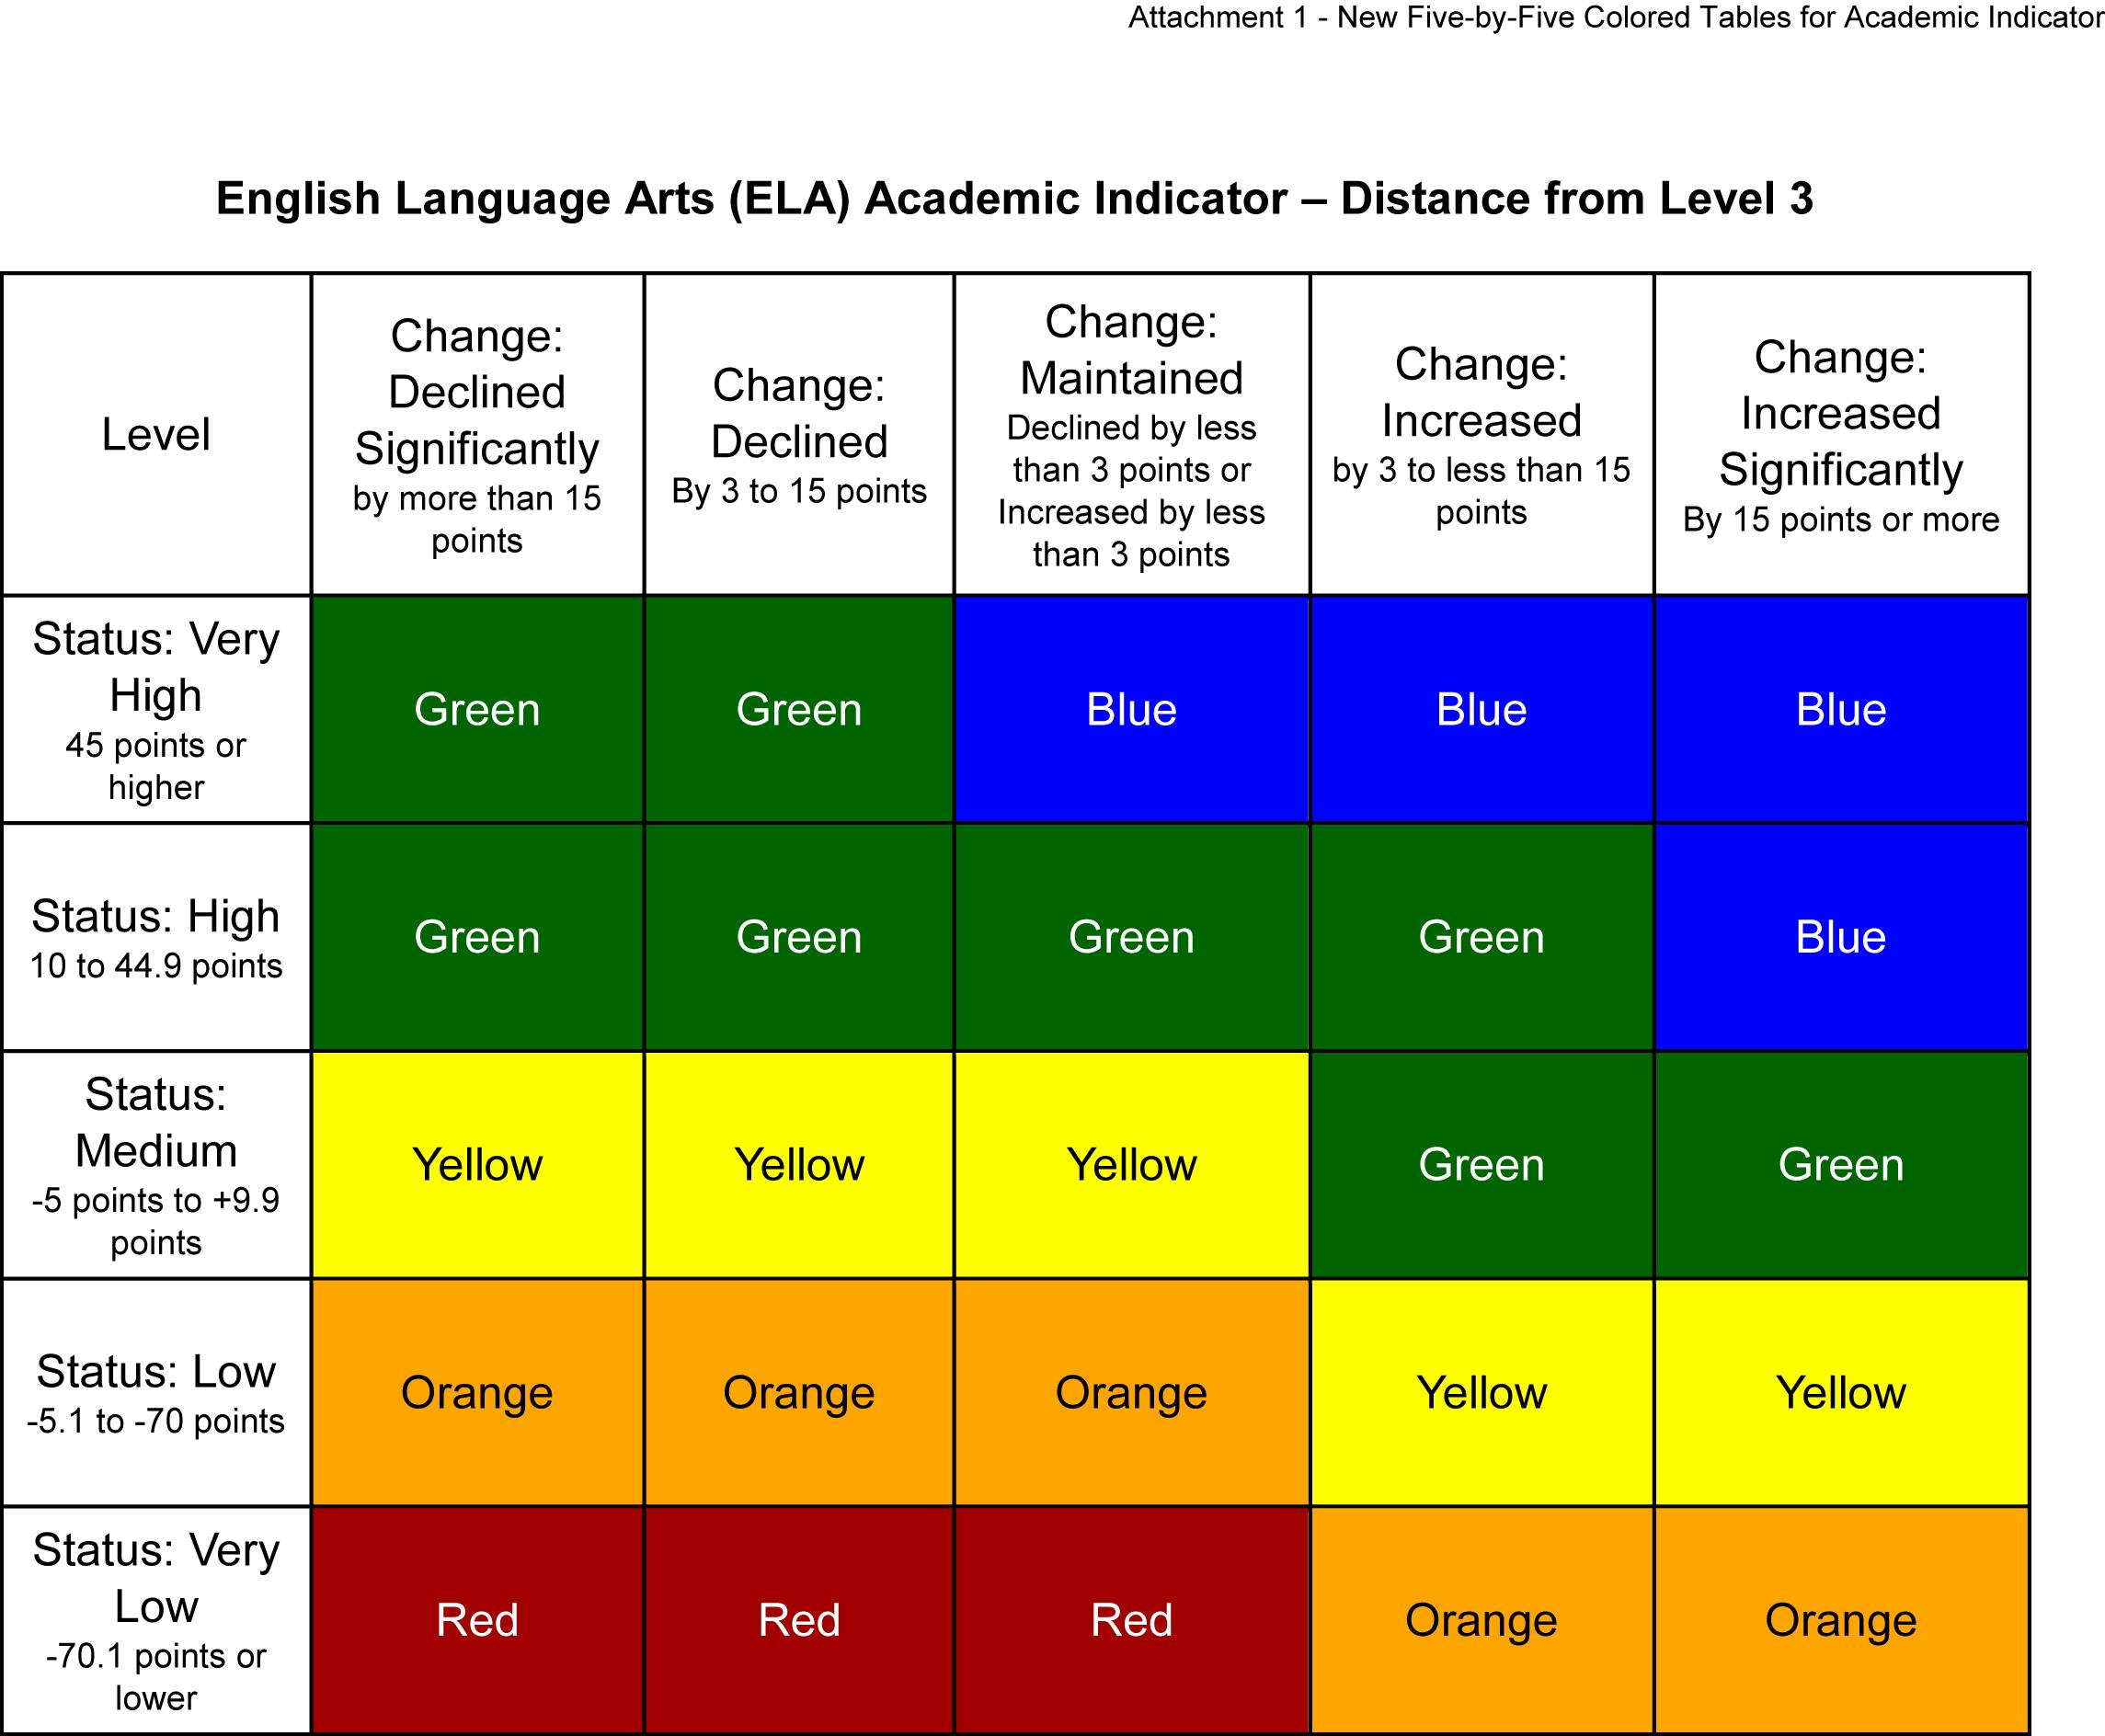 Figure 1. English Language Arts Academic Indicator, Dashboard 5 x 5.